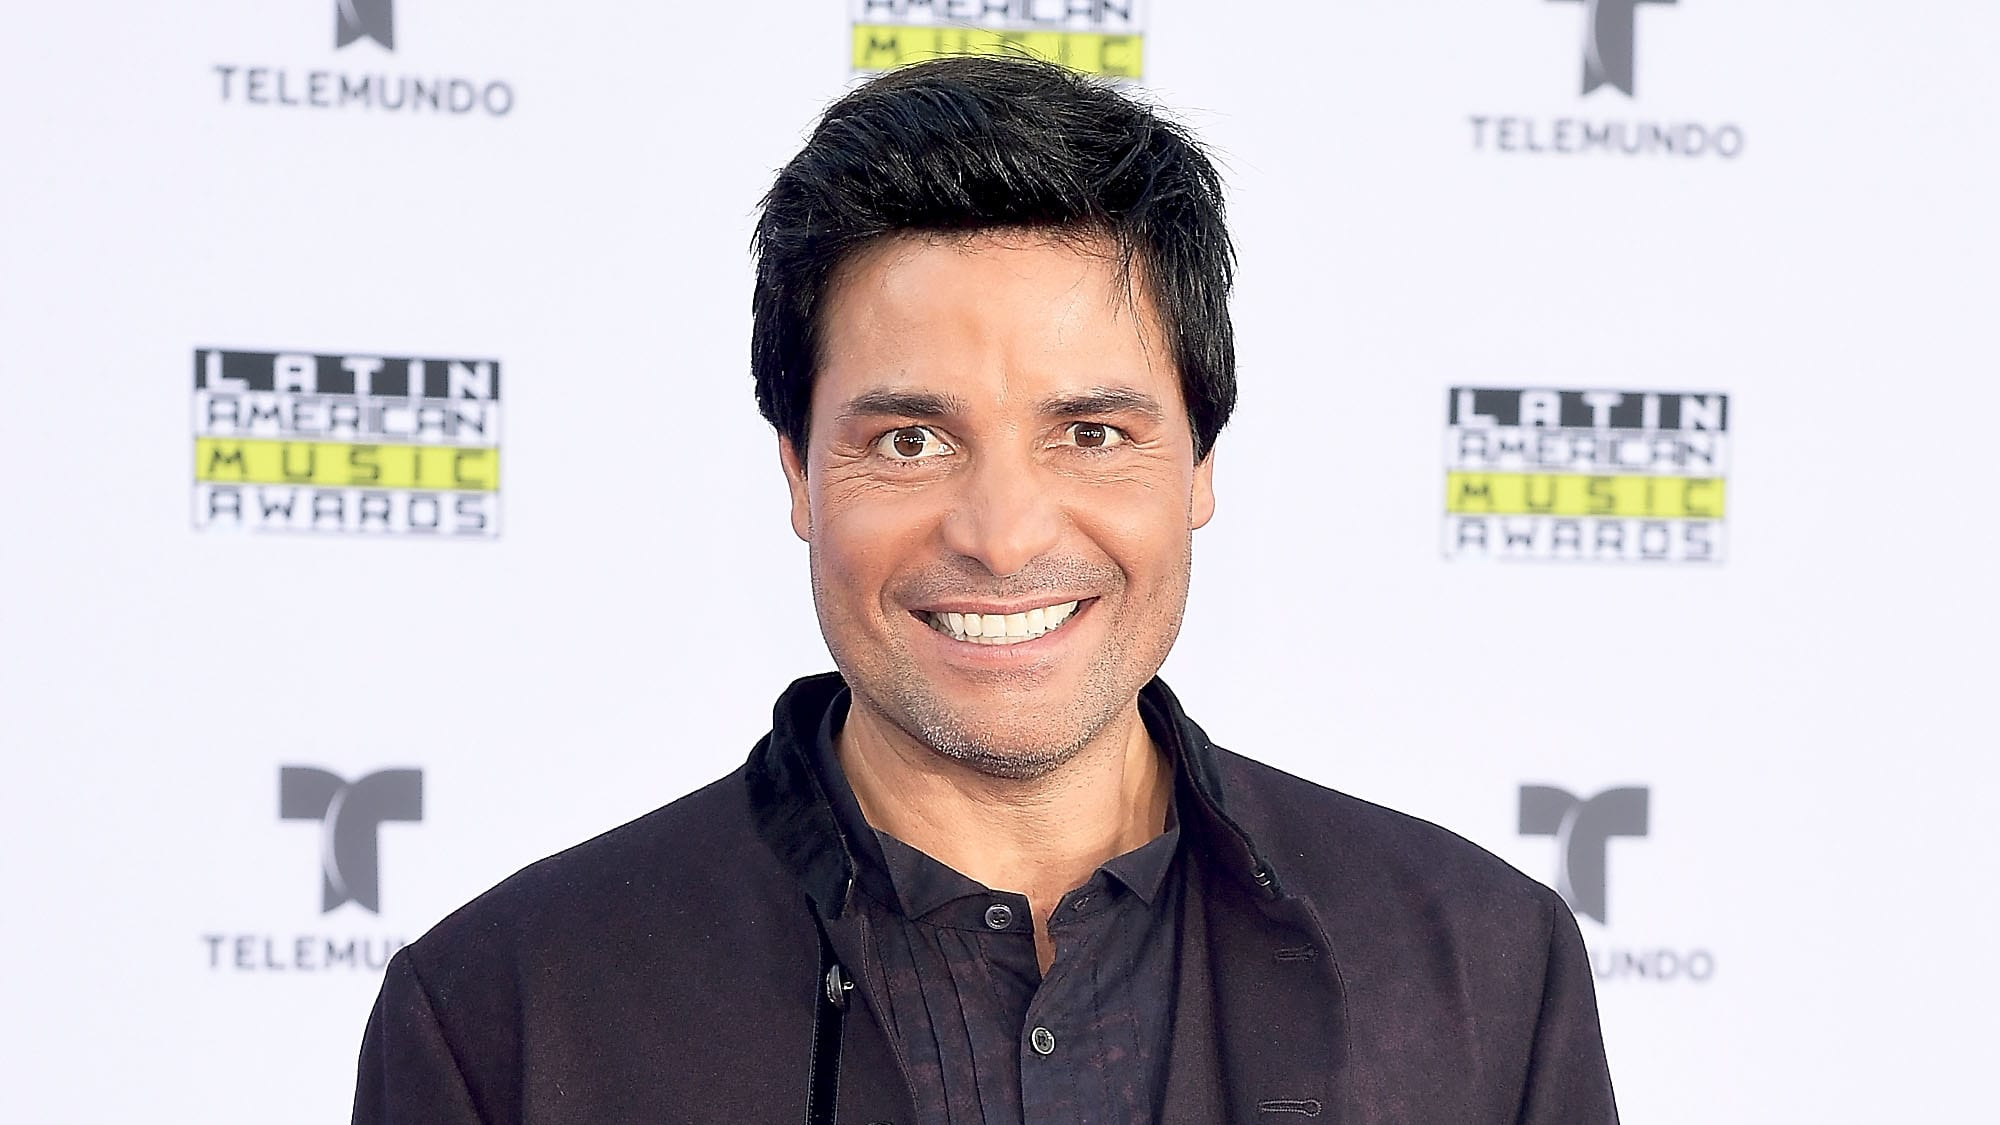 HOLLYWOOD, CA - OCTOBER 26:  Chayanne attends 2017 Latin American Music Awards at Dolby Theatre on October 26, 2017 in Hollywood, California.  (Photo by Matt Winkelmeyer/Getty Images)